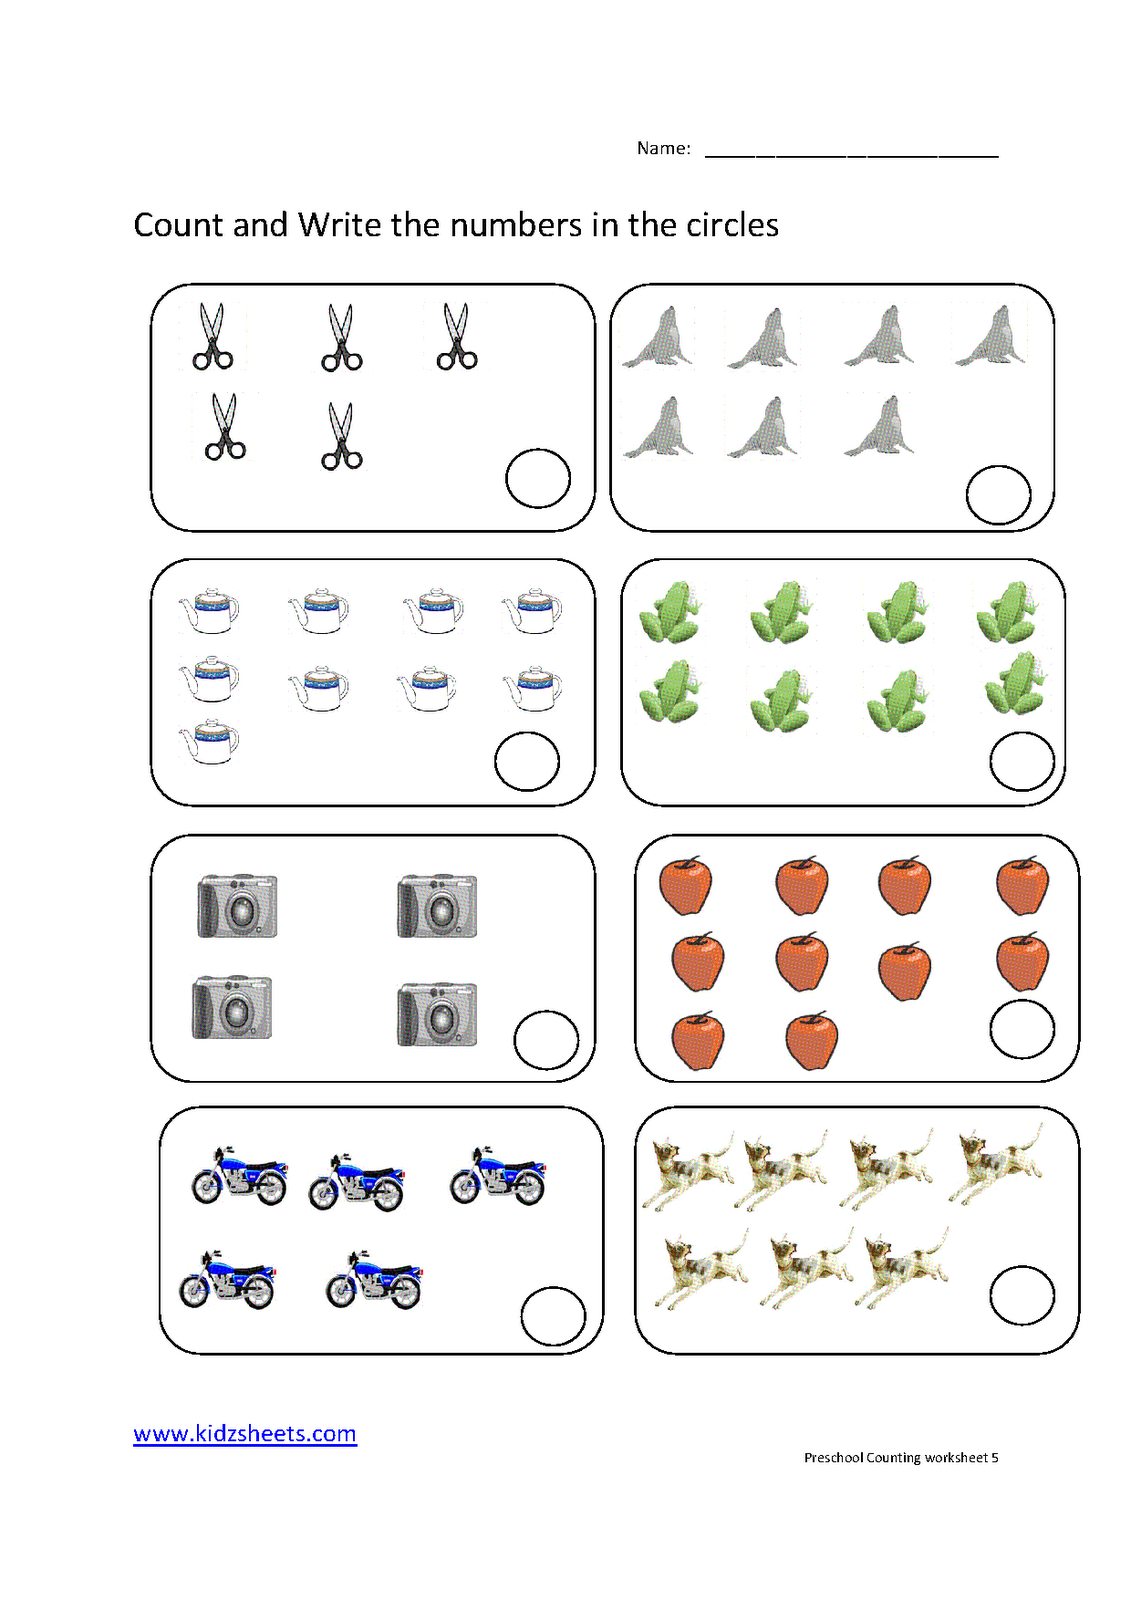 4 Best Images Of Printable Preschool Counting Worksheets